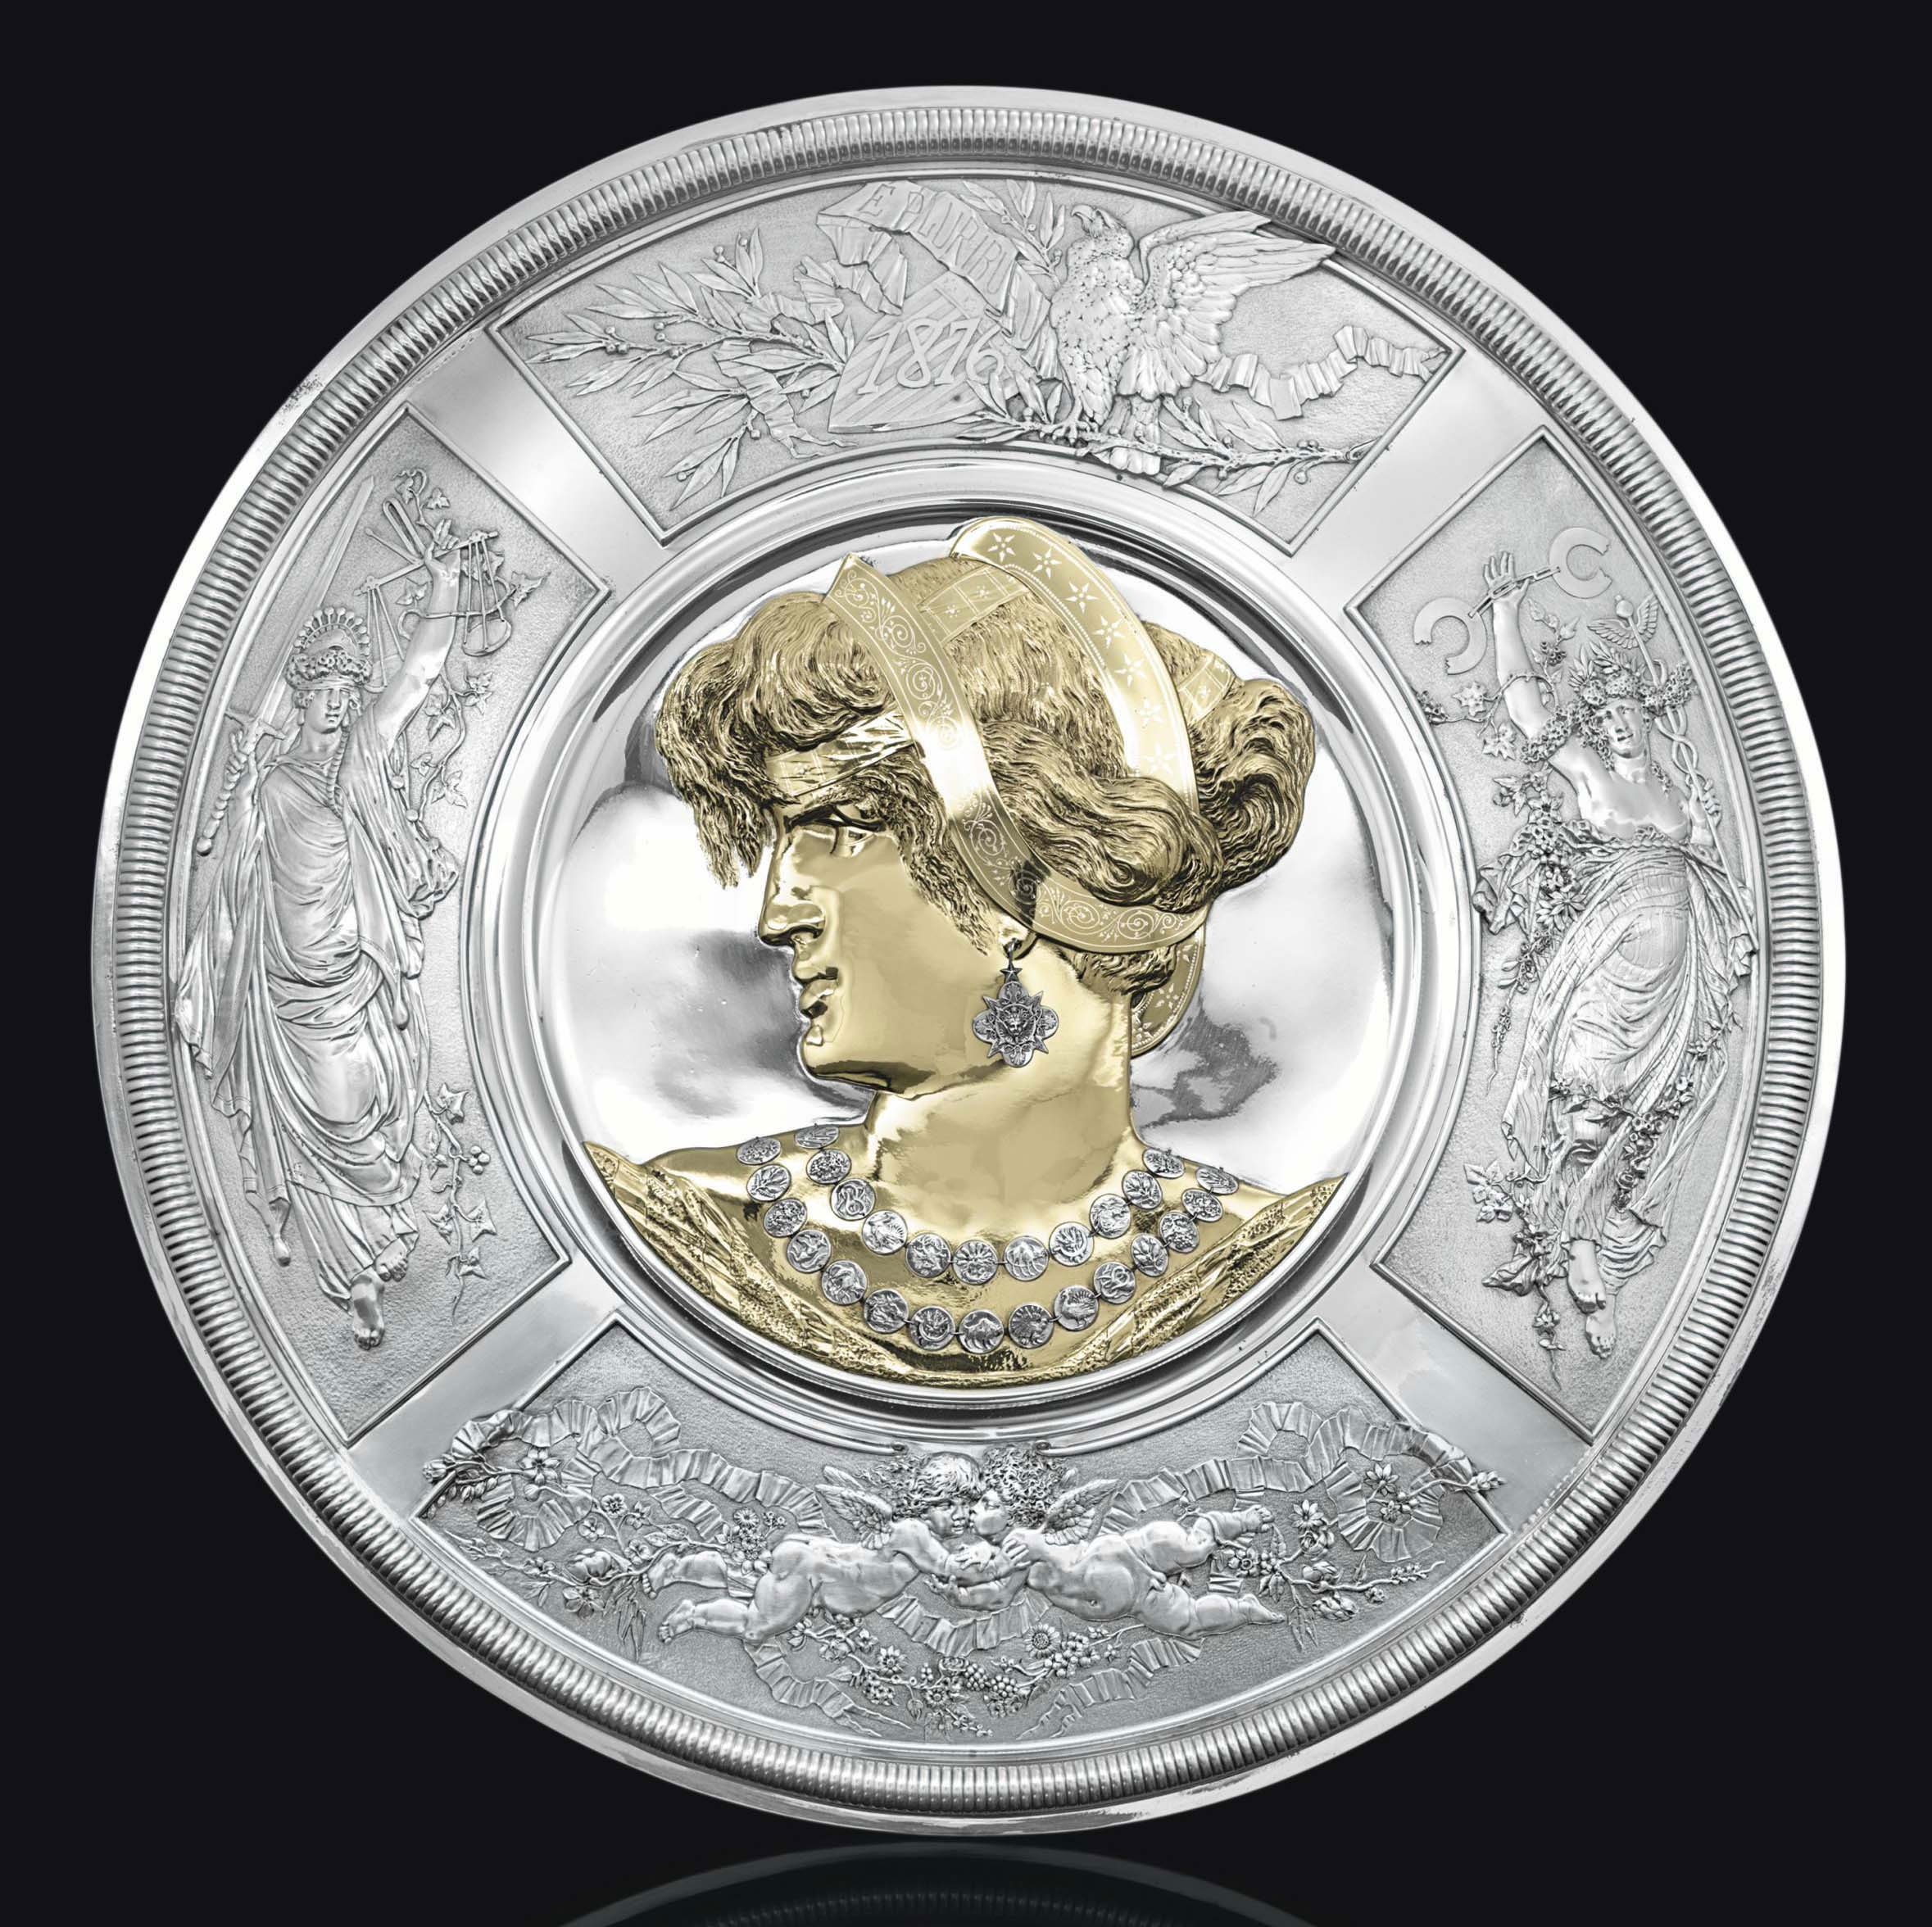 THE AMERICA SHIELD: A PARCEL-GILT SILVER PLAQUE FROM THE CENTENNIAL EXHIBITION OF 1876